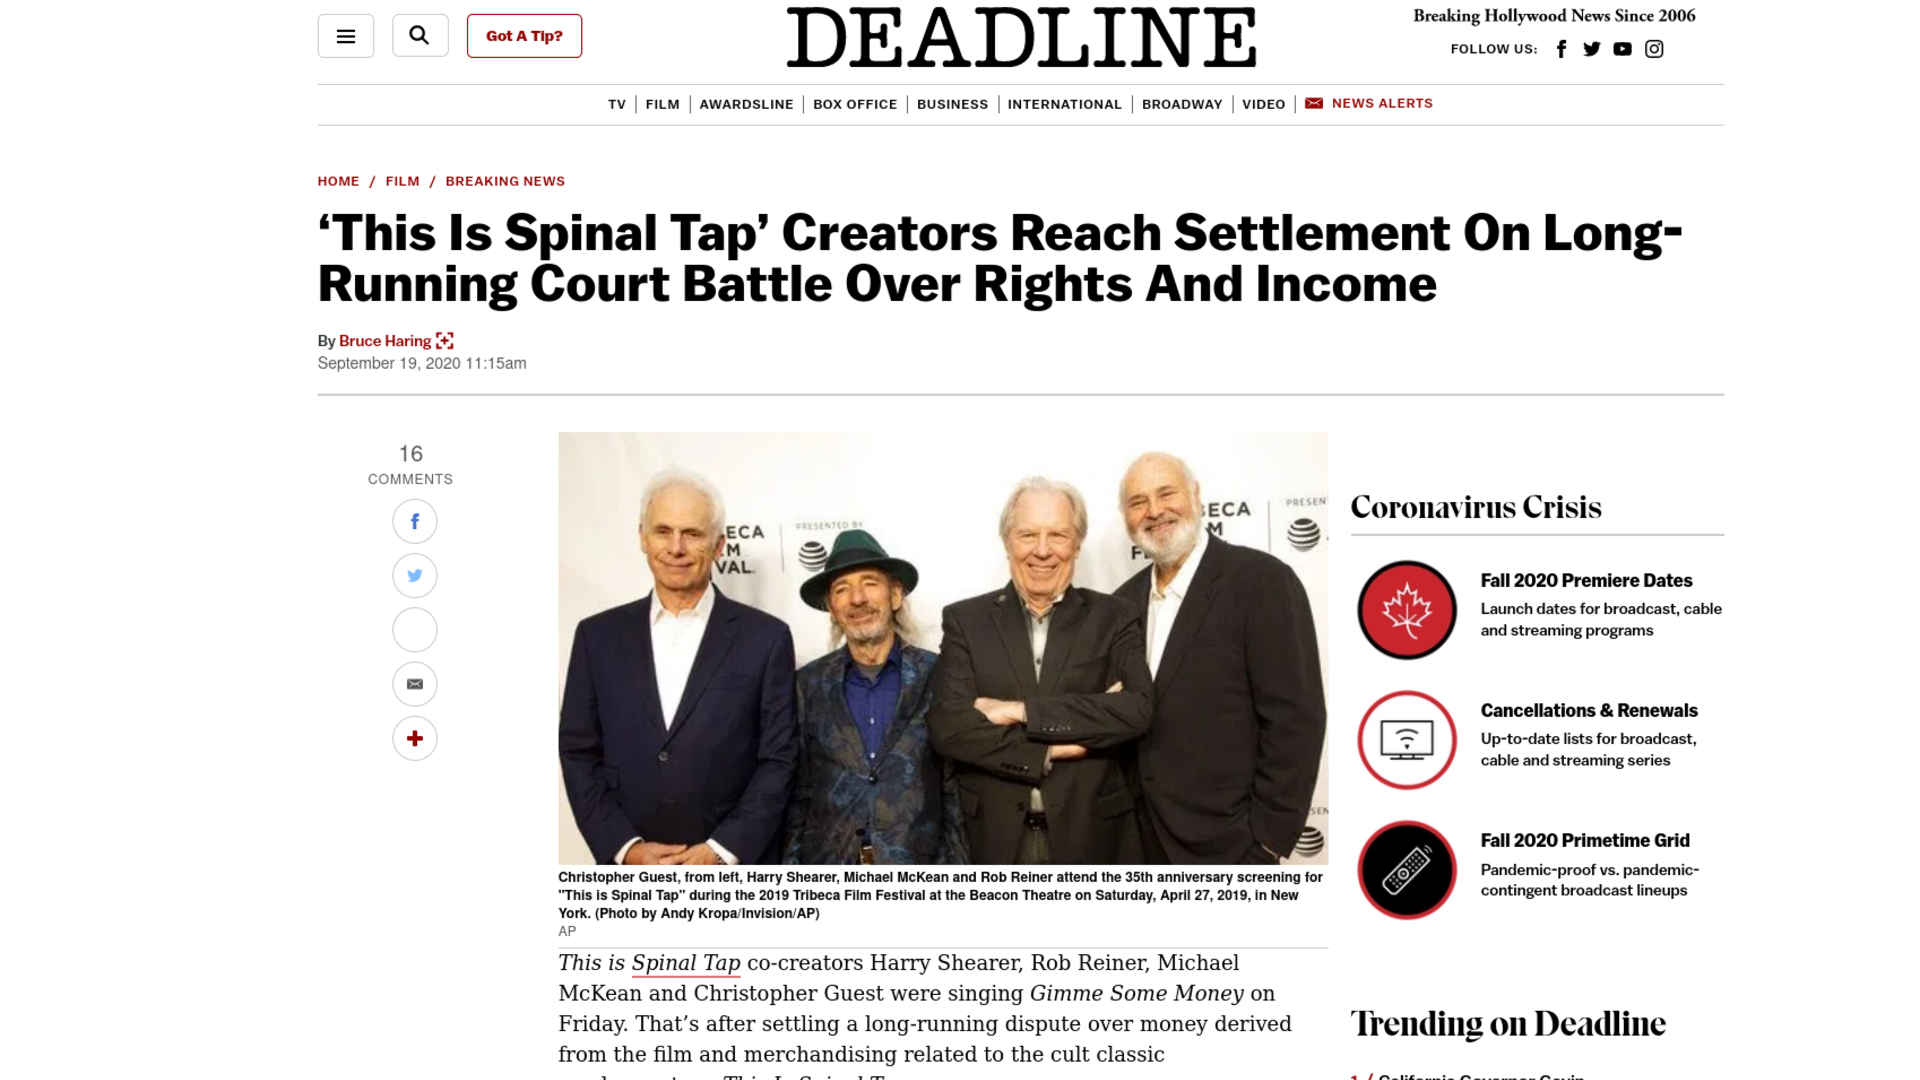 Fairness Rocks News 'This Is Spinal Tap' Creators Reach Settlement On Long-Running Court Battle Over Rights And Income